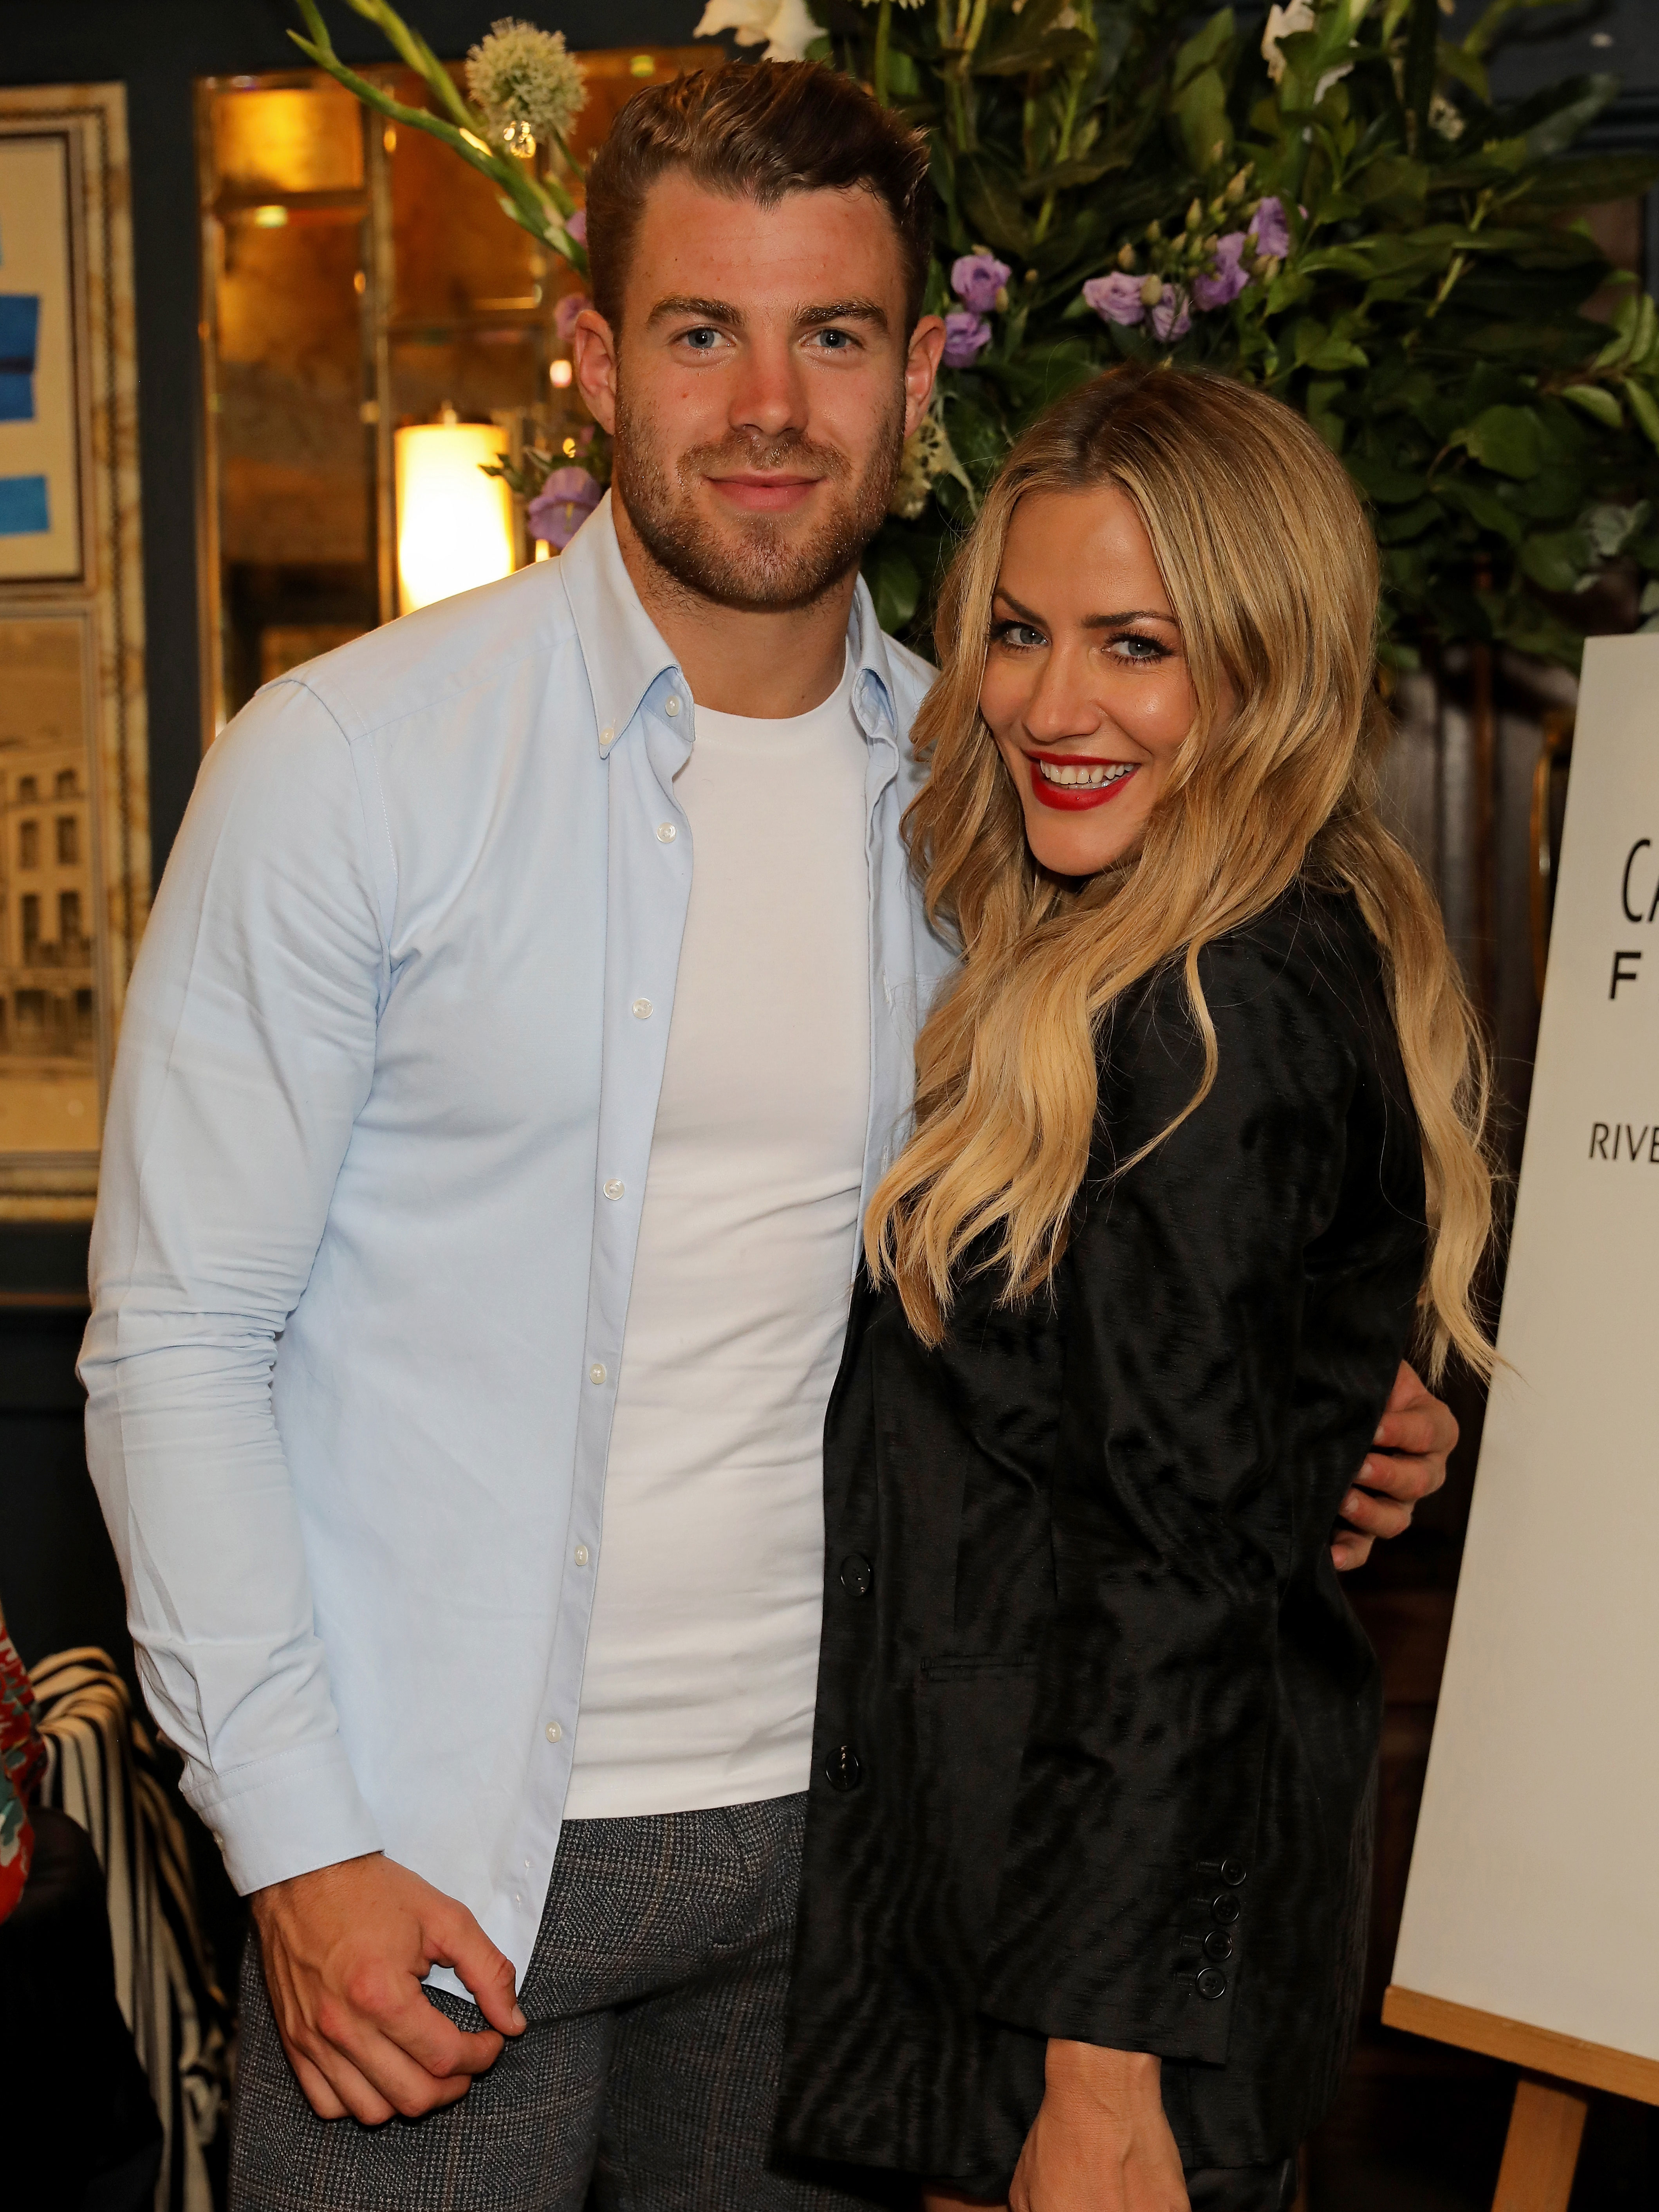 Awkward! Love Island's Molly-Mae was spotted cosying up to Caroline Flack's ex flame earlier this year 3